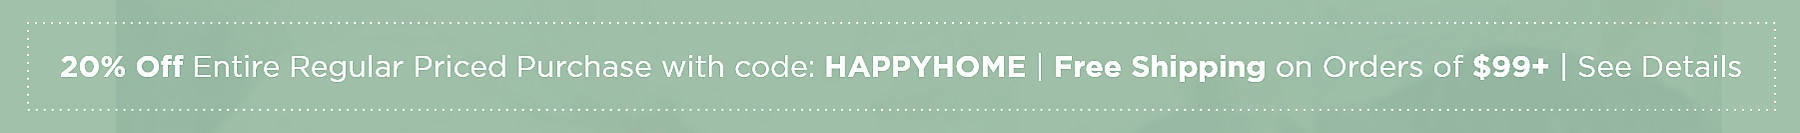 20% Off Entire Regular Priced Purchase with code: HAPPYHOME Free Shipping on Orders of $99+ See Details